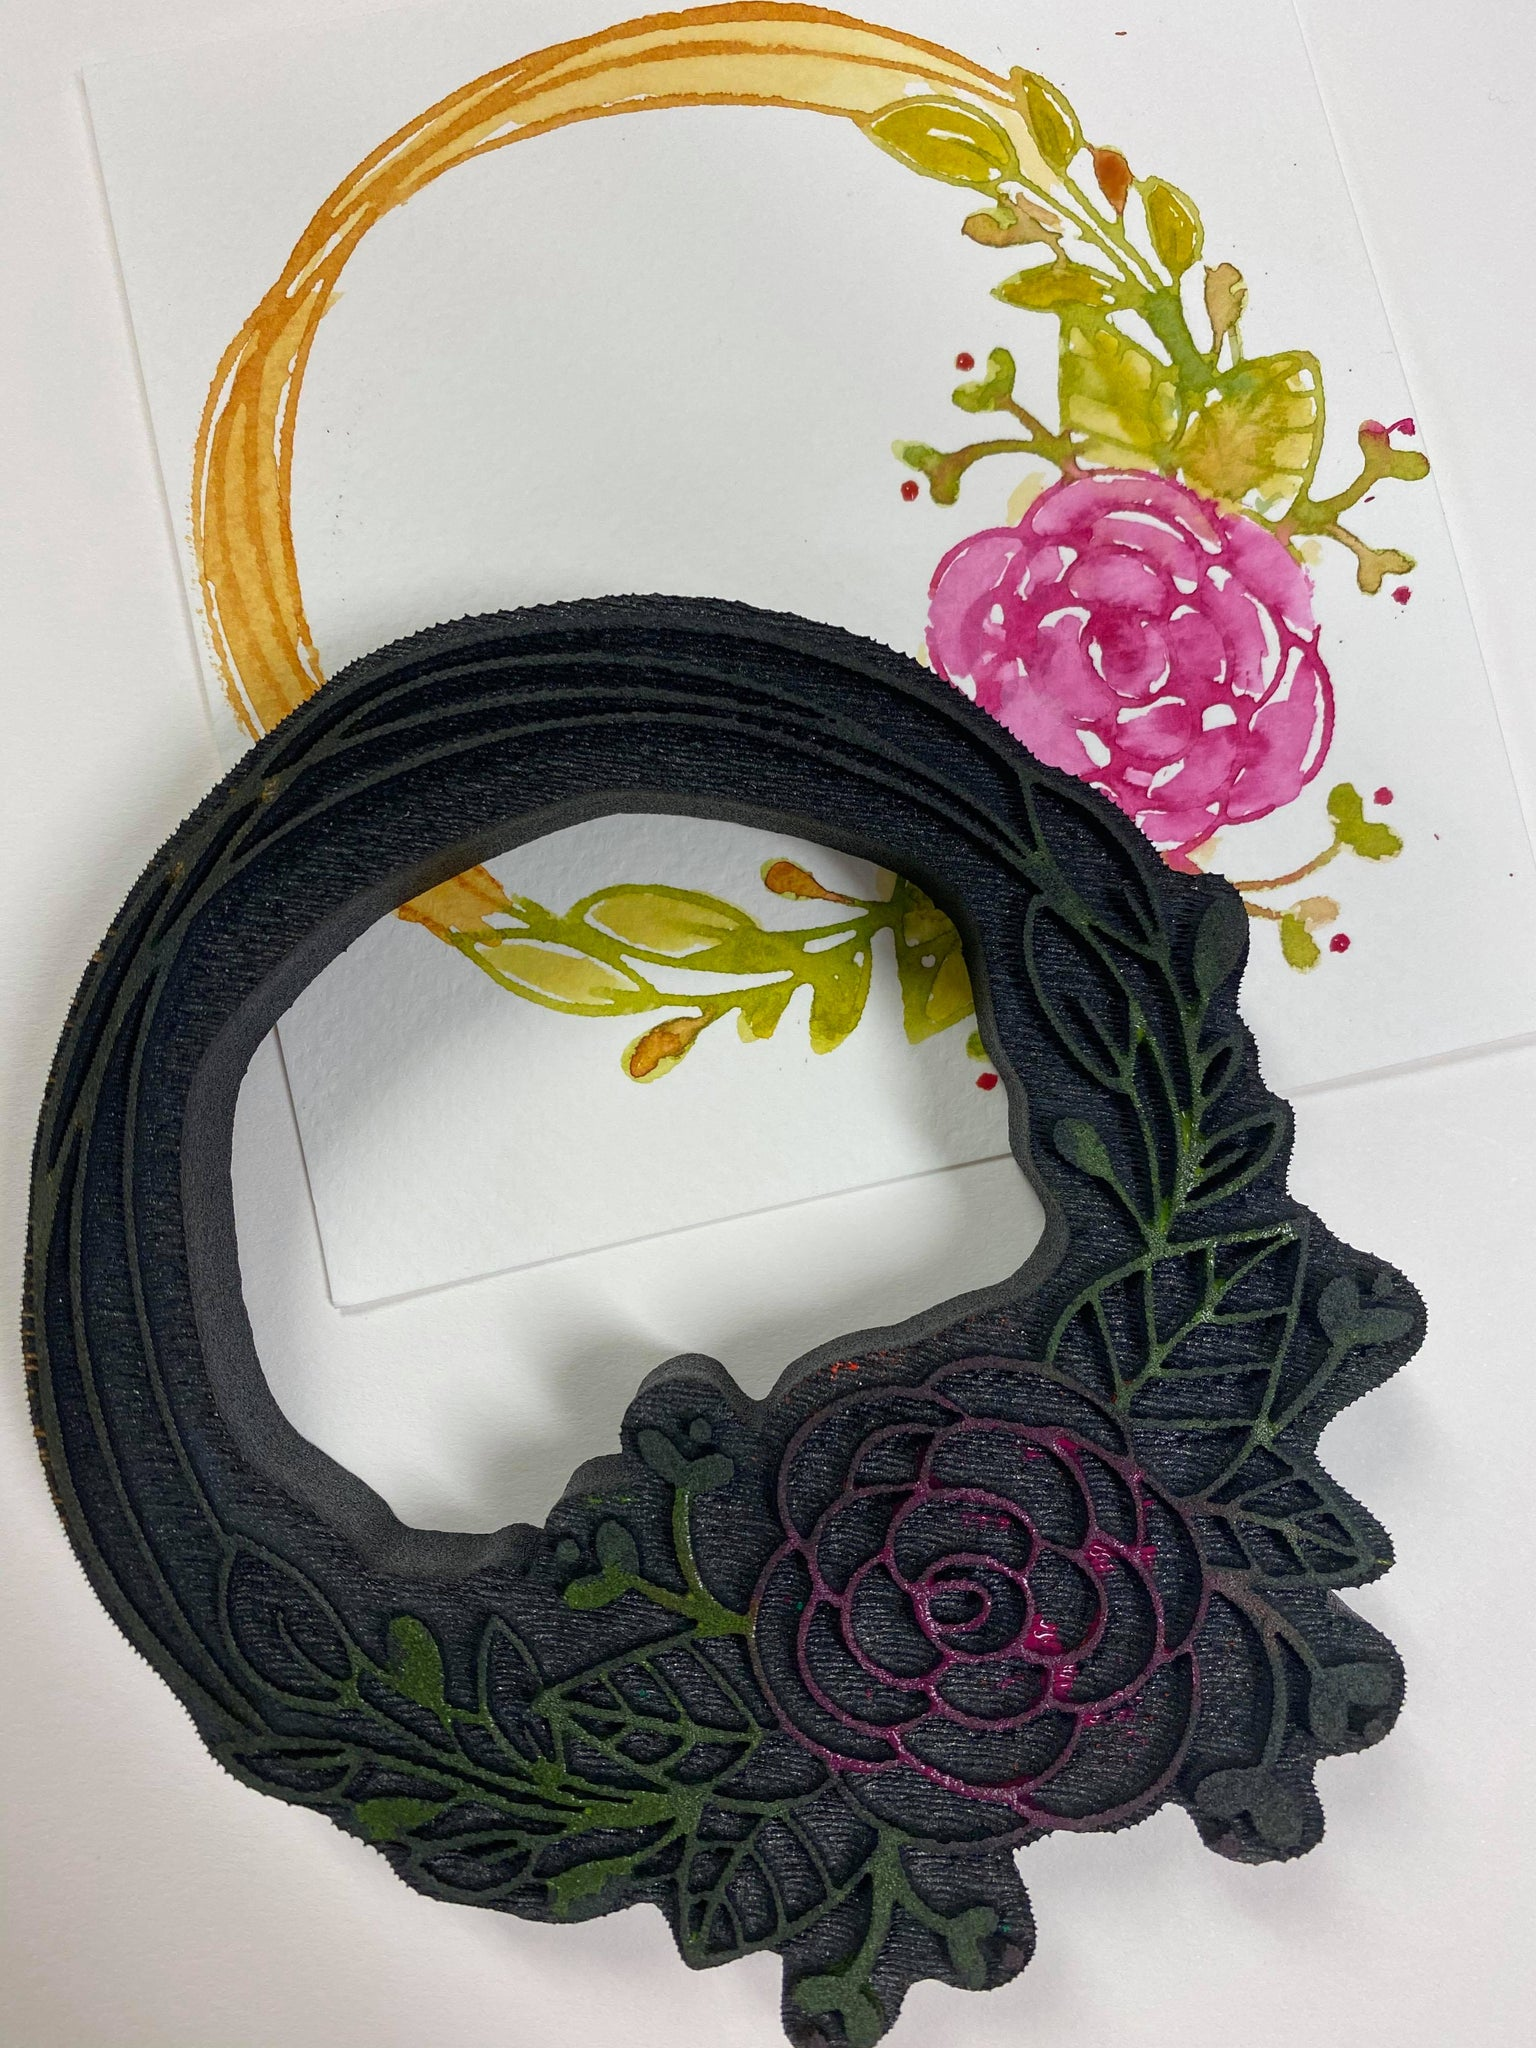 Gale Nation | Floral Wreath | Foam Stamp